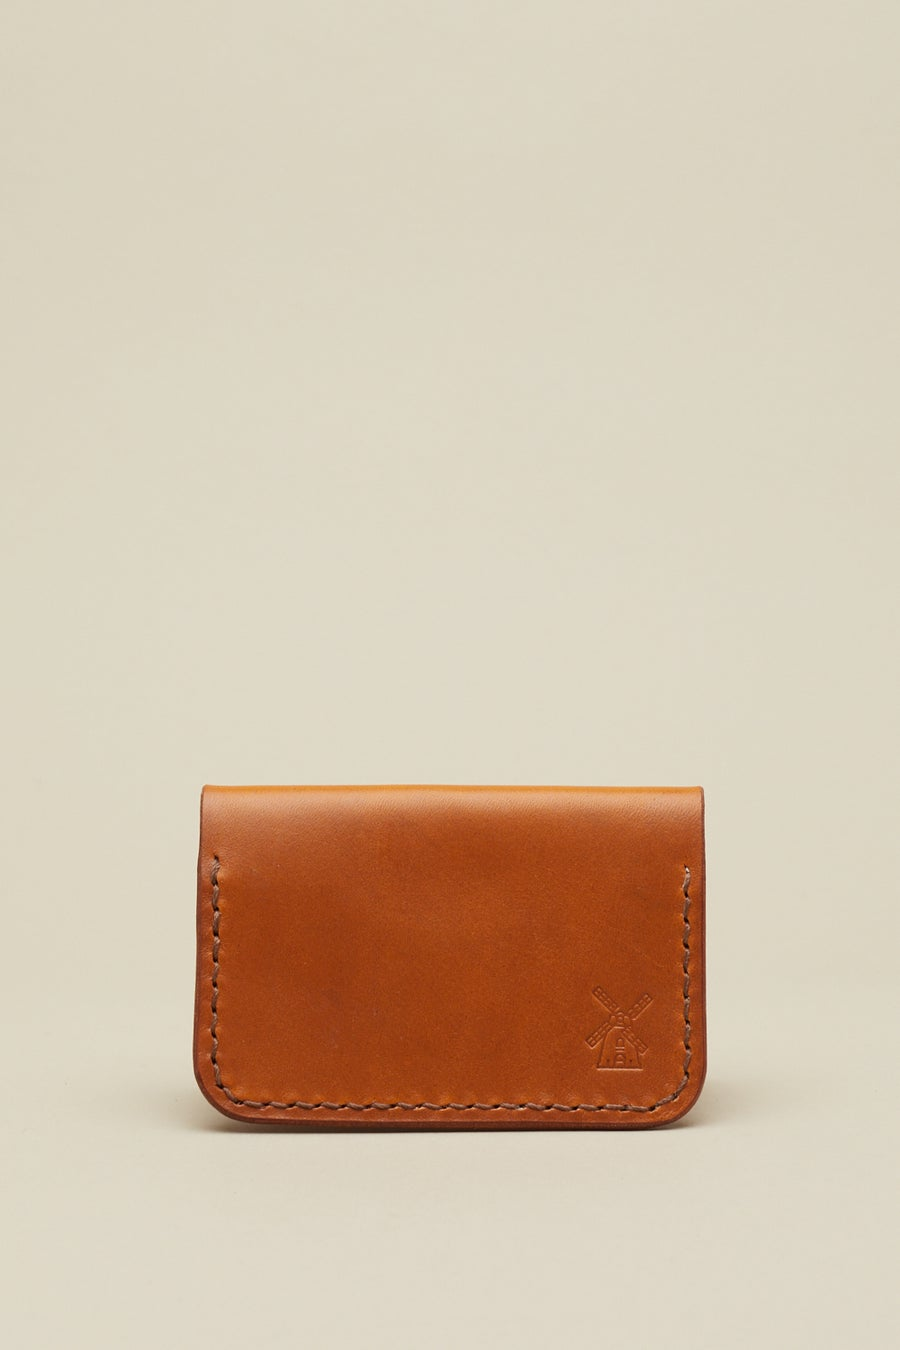 Image of Fold Wallet in Tan